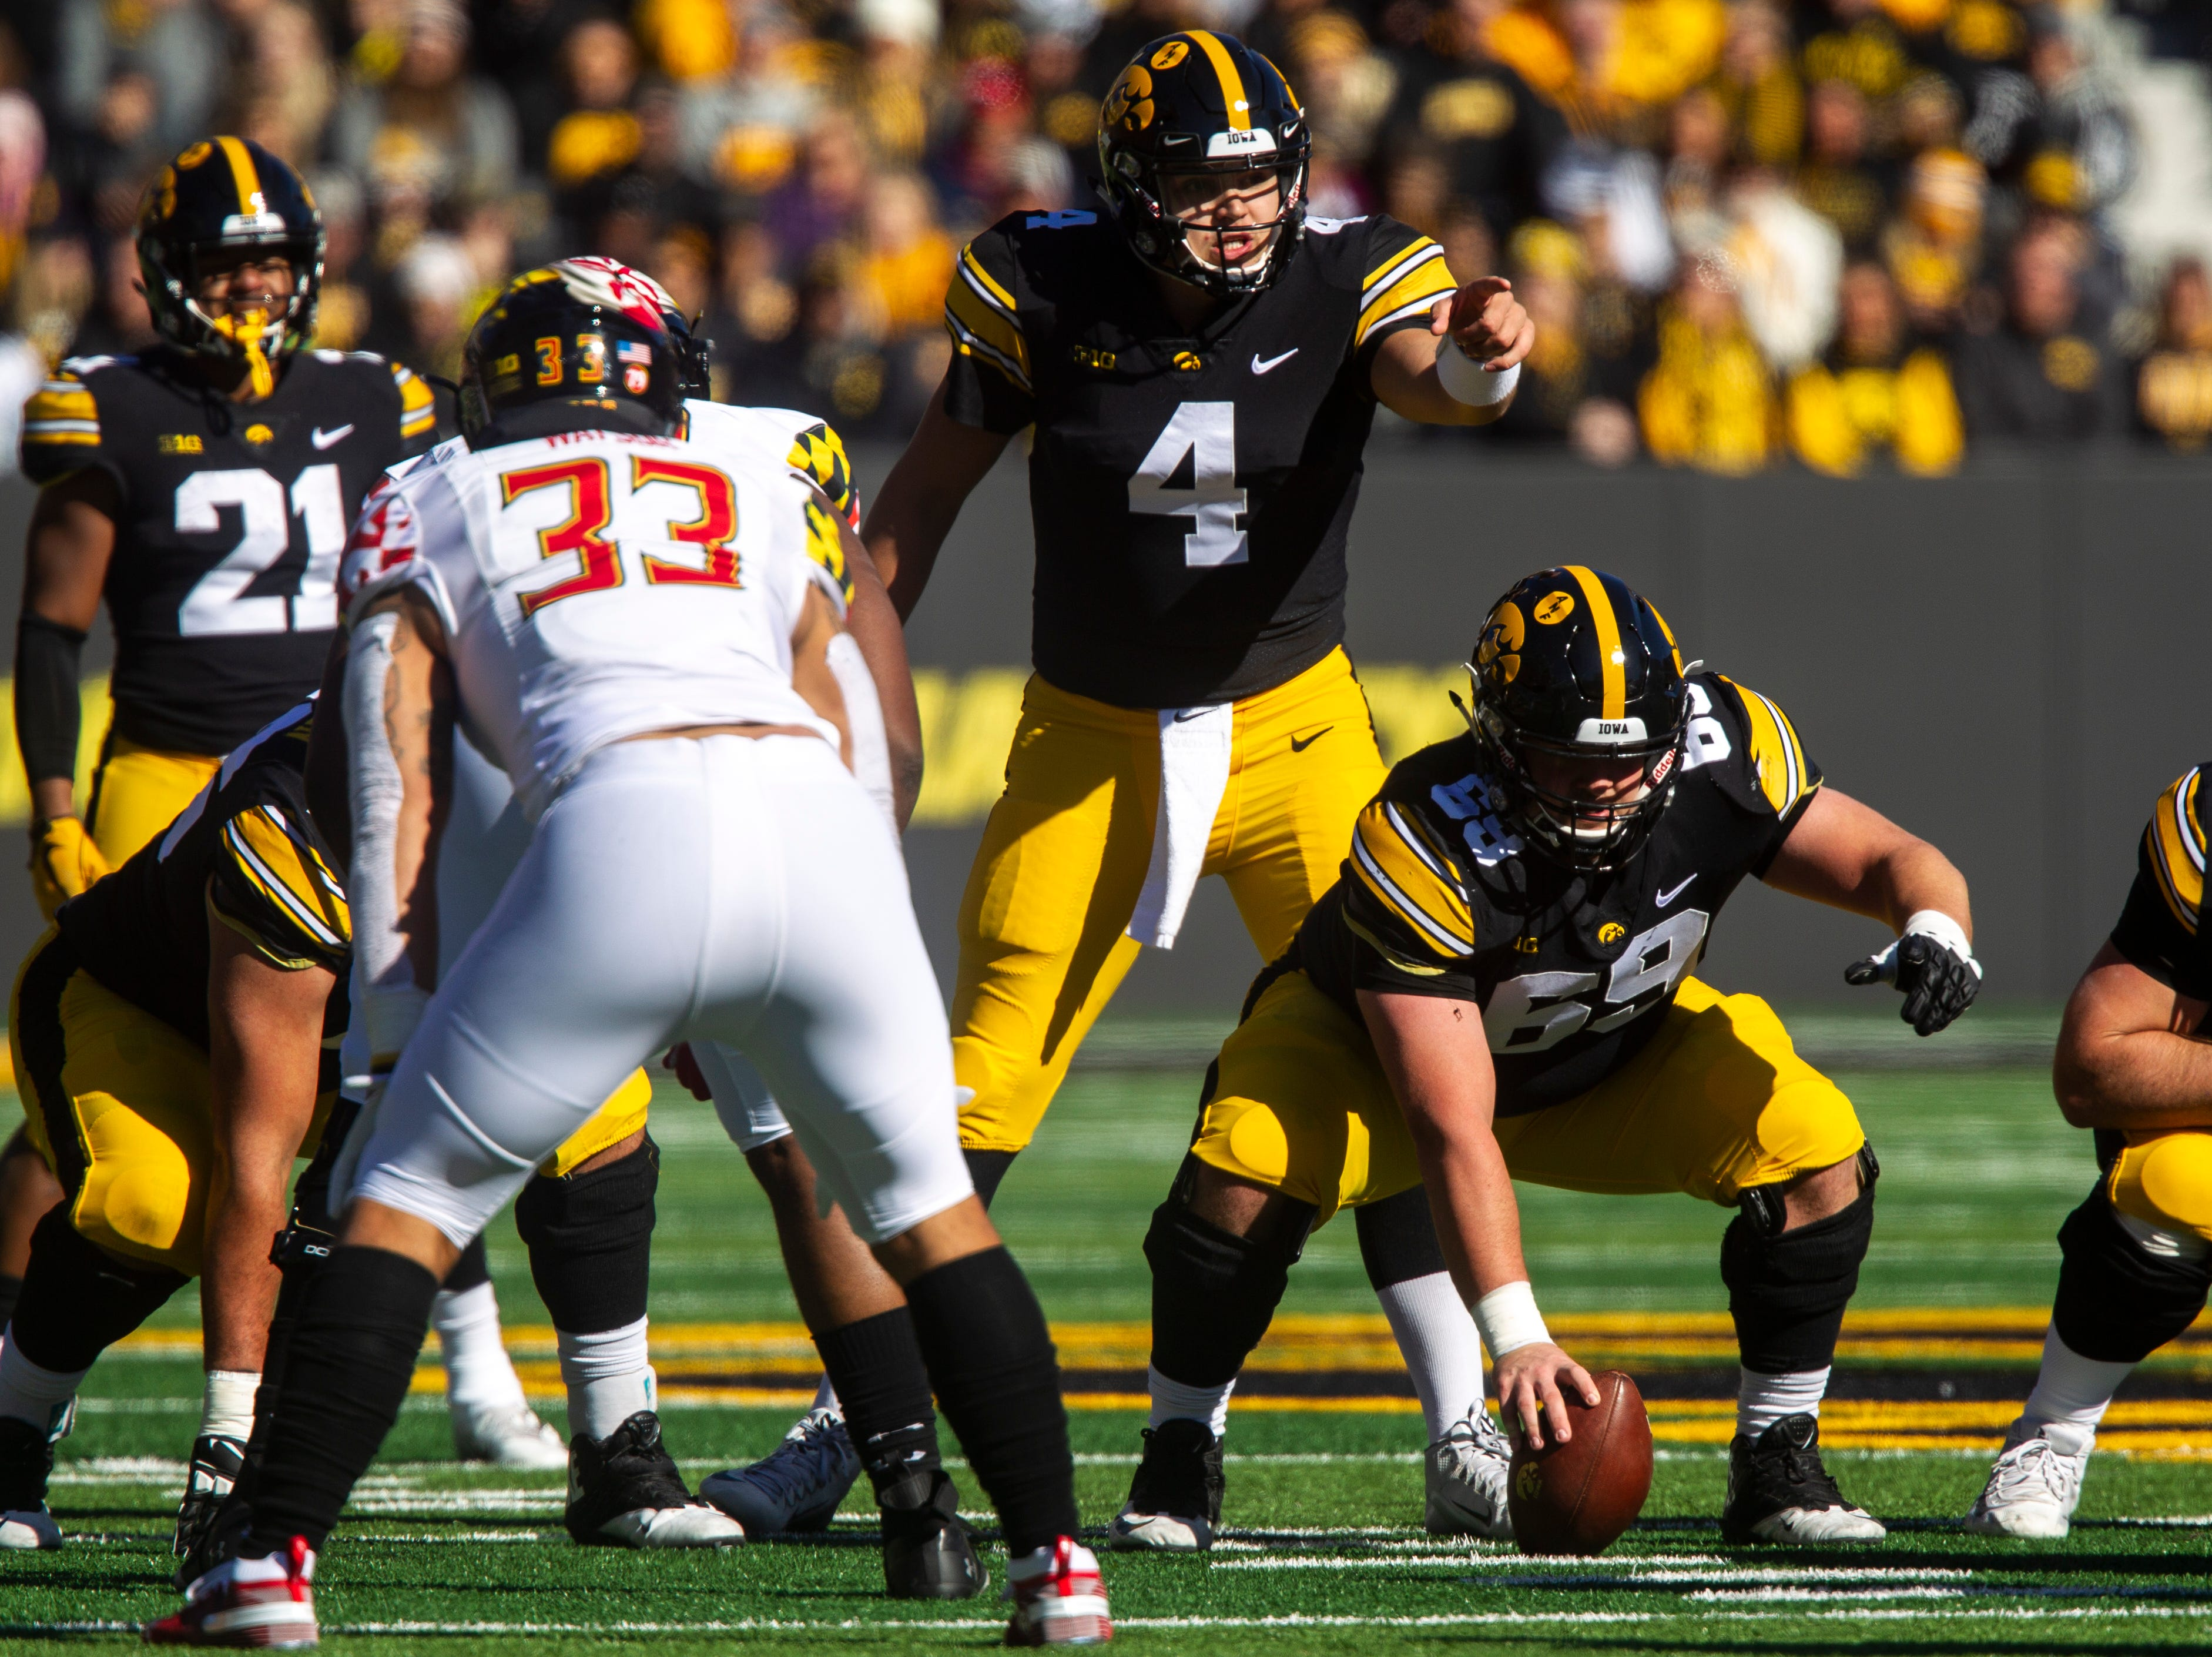 Iowa quarterback Nate Stanley (4) calls out defensive coverage before taking a snap from Iowa center Keegan Render (69) during an NCAA Big Ten conference football game on Saturday, Oct. 20, 2018, at Kinnick Stadium in Iowa City.